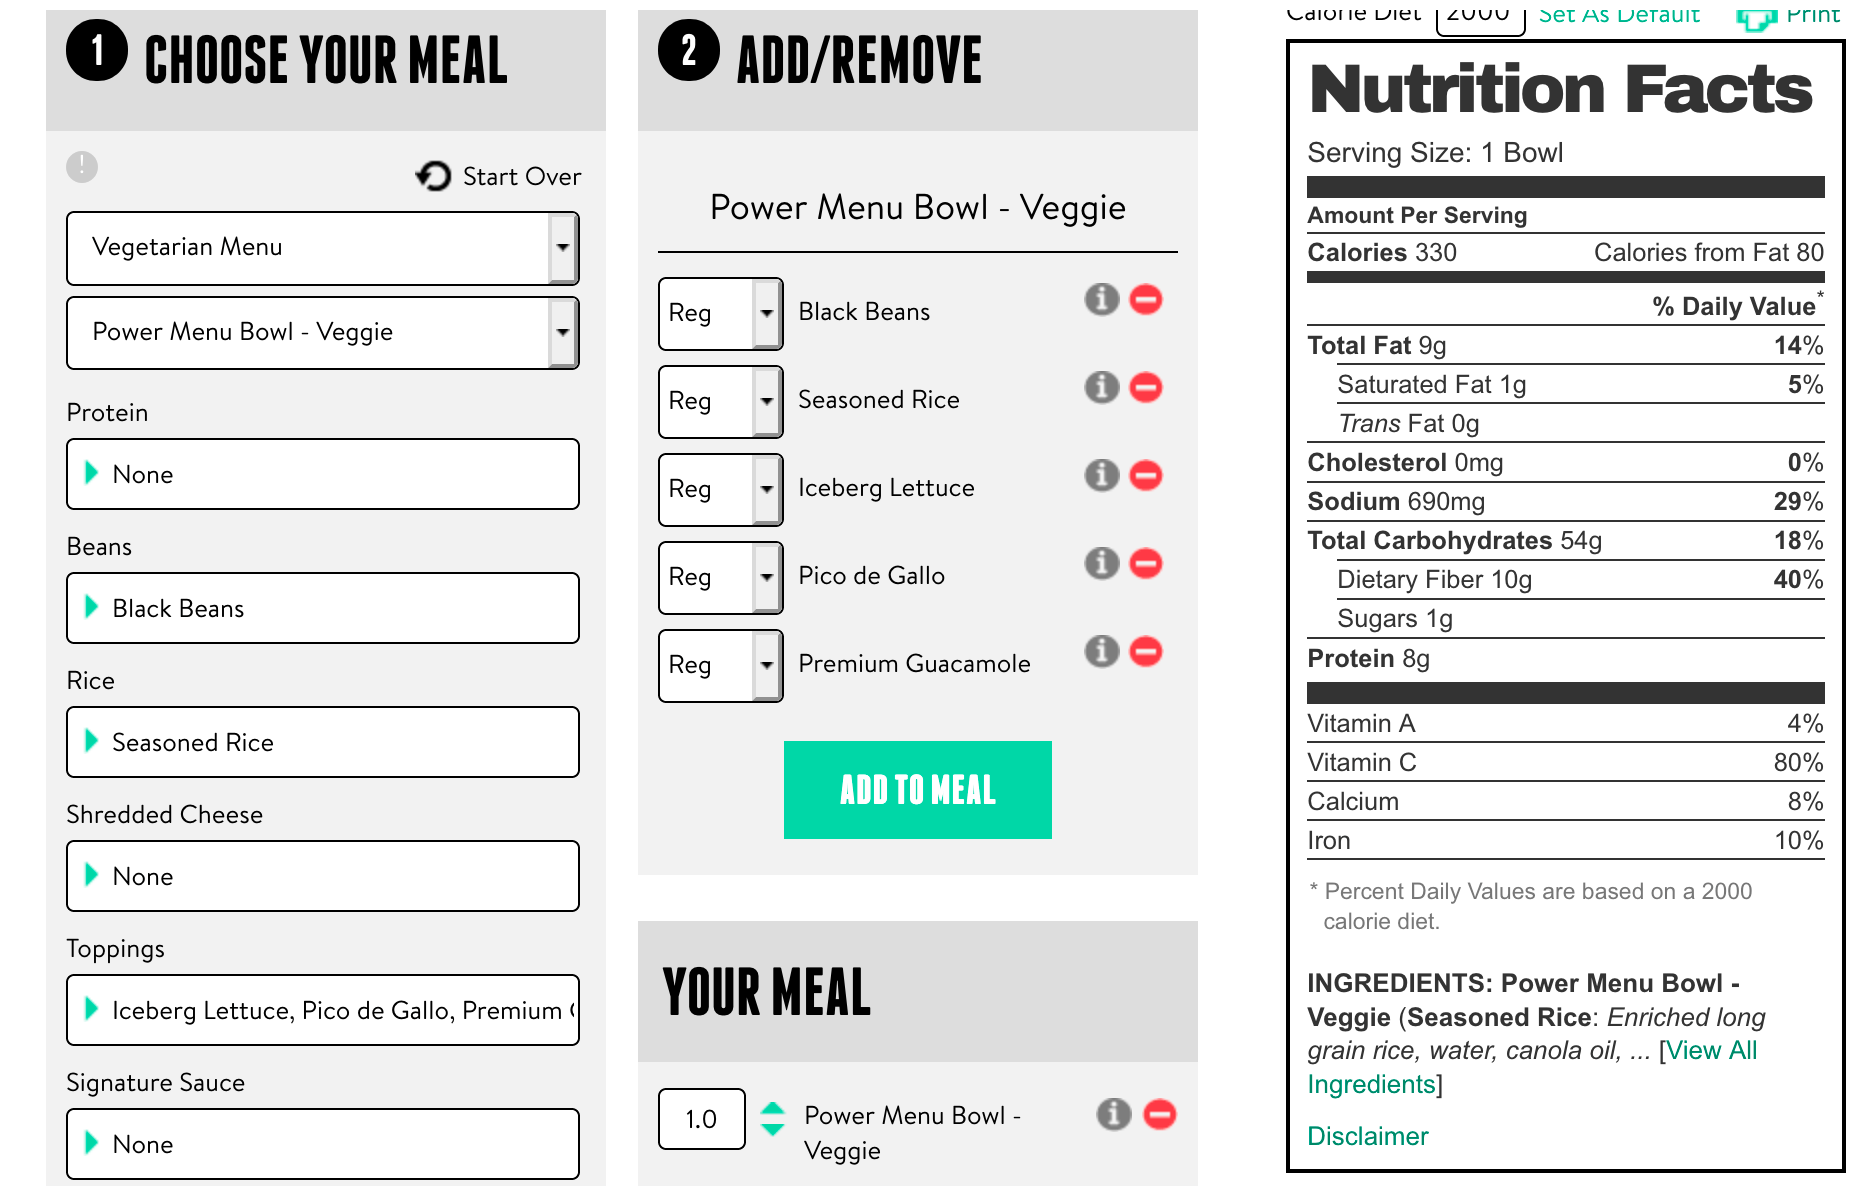 Taco Bell's website includes a very comprehensive nutrition calculator that can help you find fast foods that are okay for kidney disease!